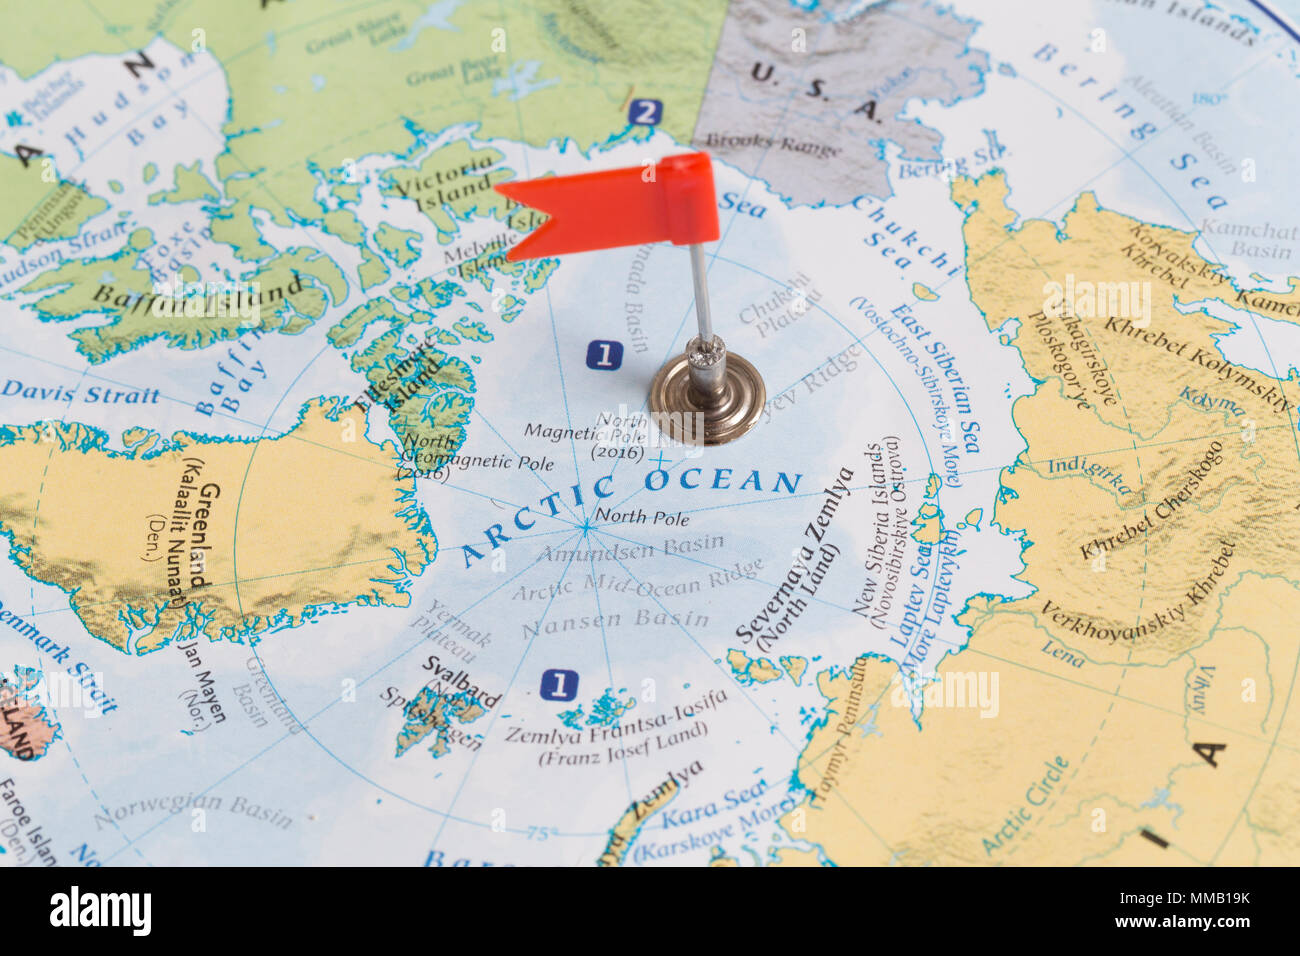 Flag Marking The North Pole And Actic Ocean On A World Map Stock